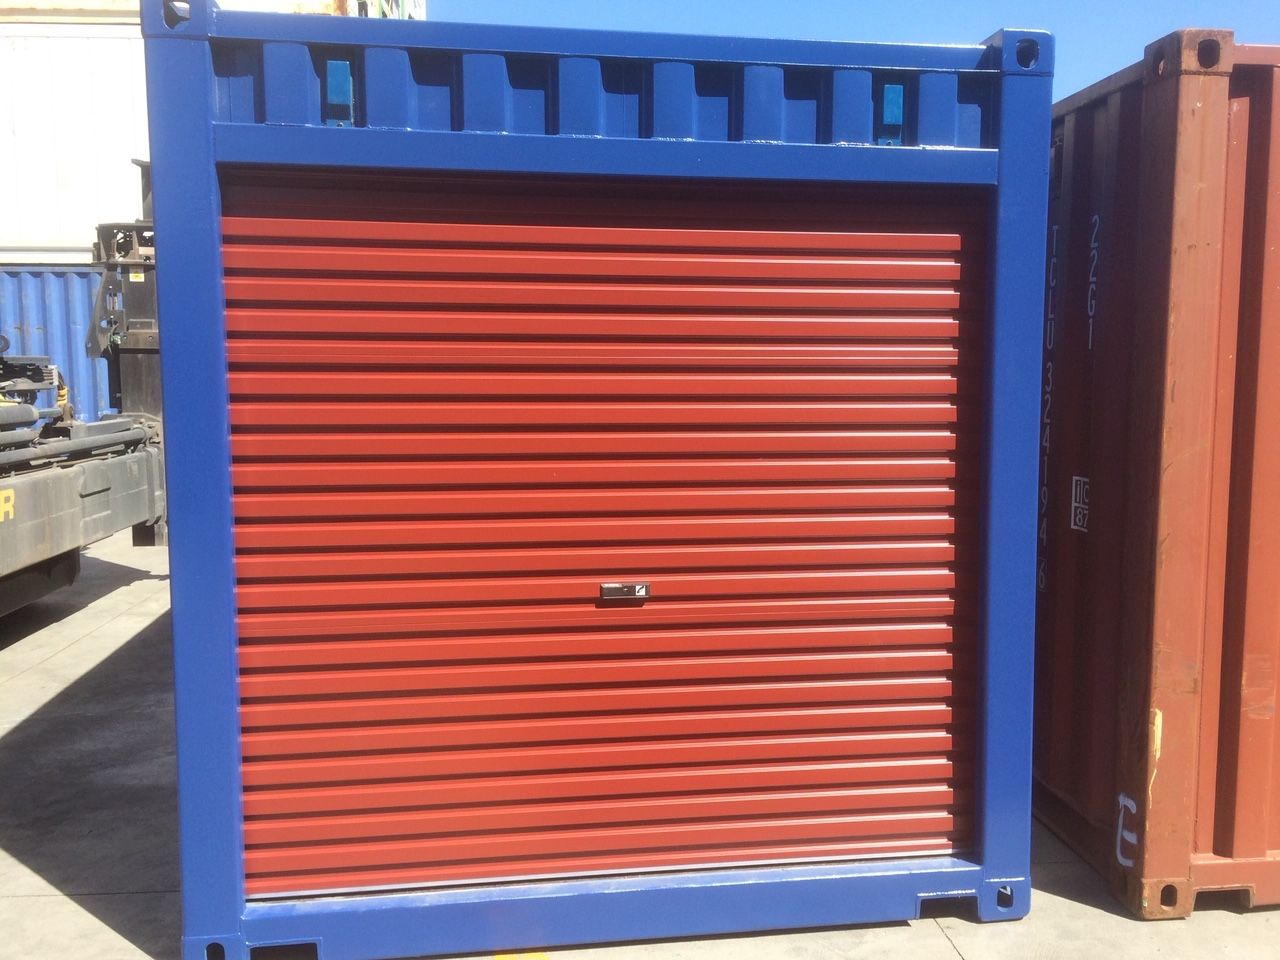 Shipping Containers For Sale In Melbourne In 2020 Shipping Containers For Sale Containers For Sale Roller Doors